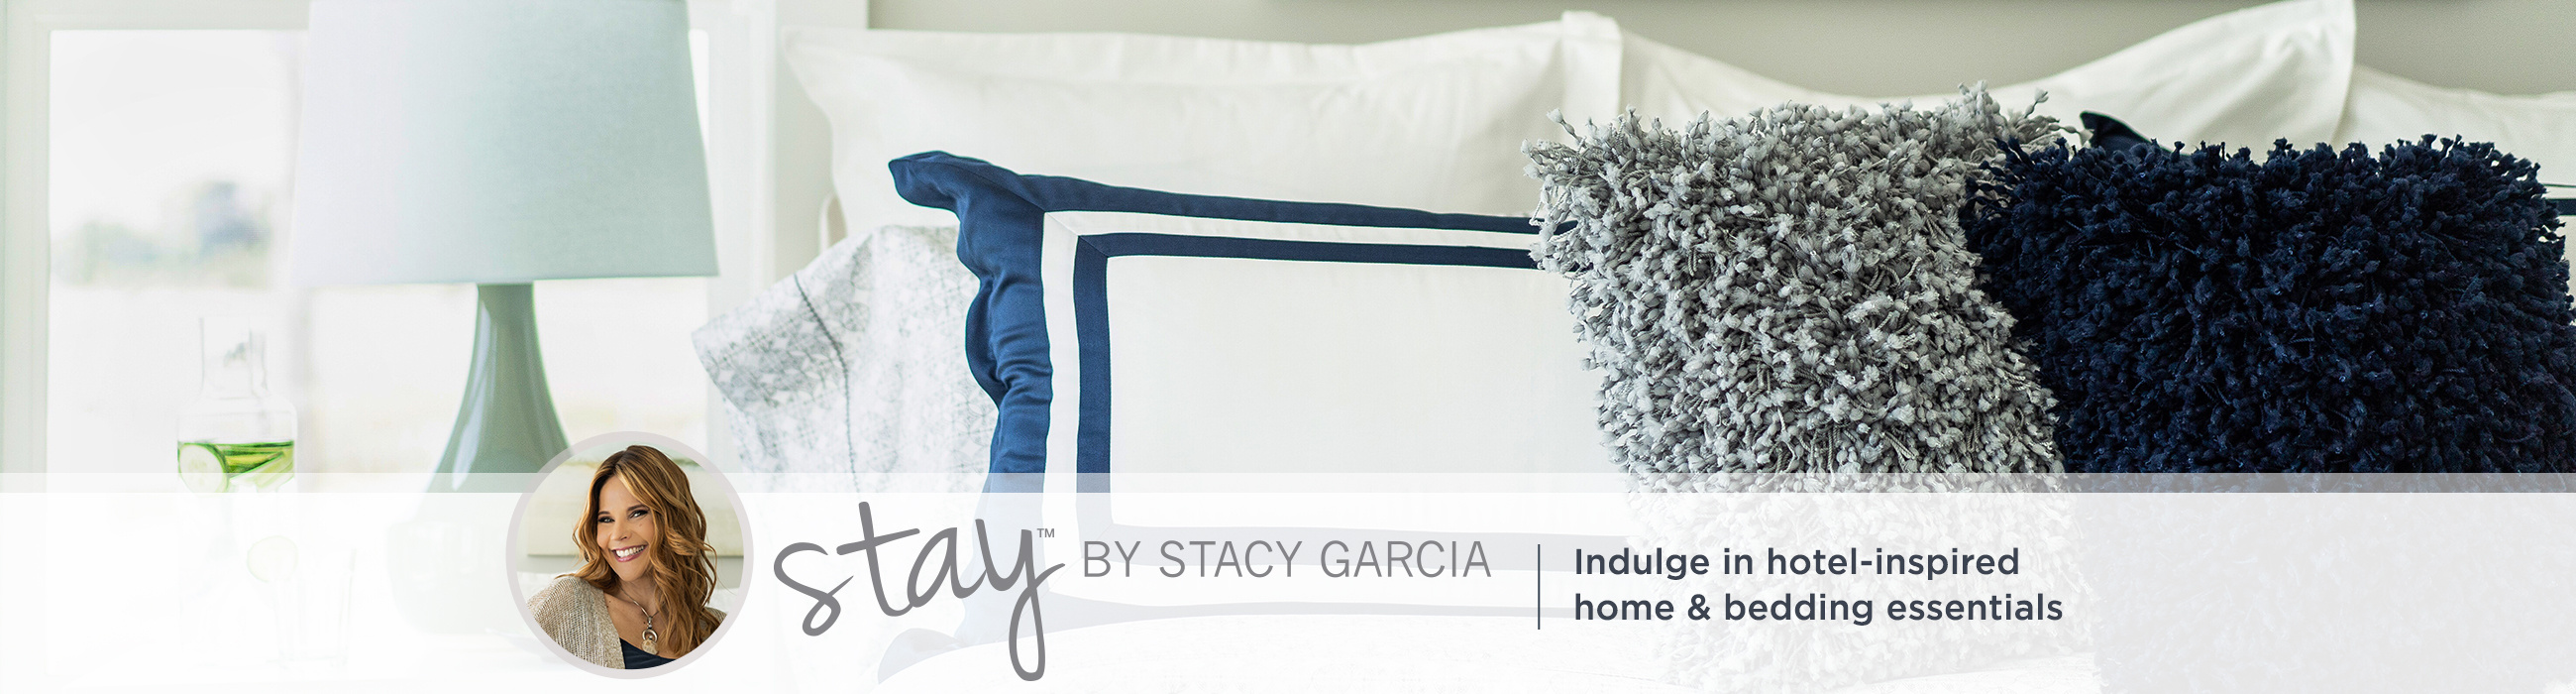 Stay by Stacy Garcia - Indulge in hotel-inspired home & bedding essentials